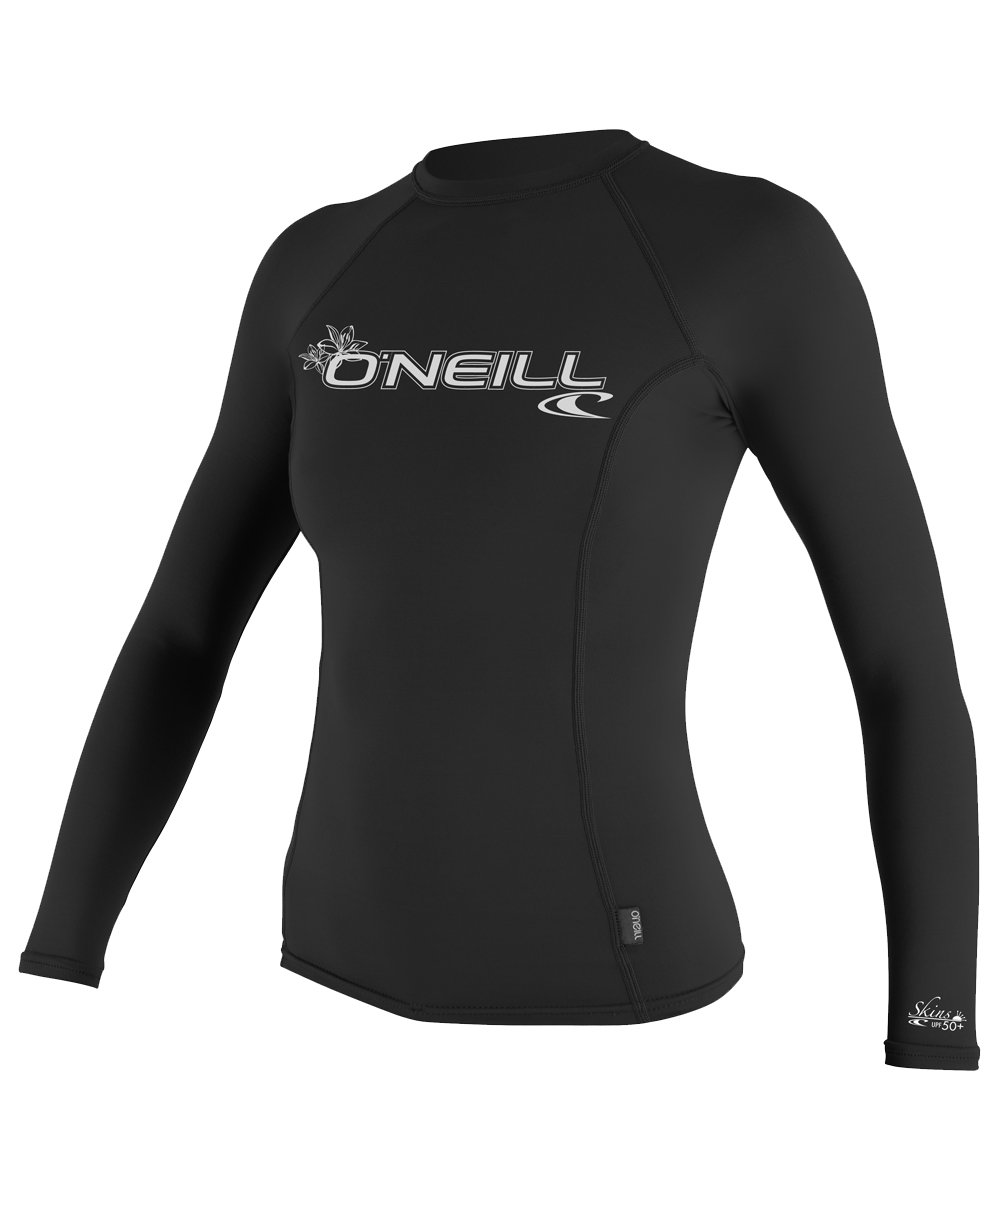 O'Neill UV 50+ Sun Protection Womens Basic Skins Long Sleeve Crew Sun Shirt Rash Guard, Black, X-Large by O'Neill Wetsuits